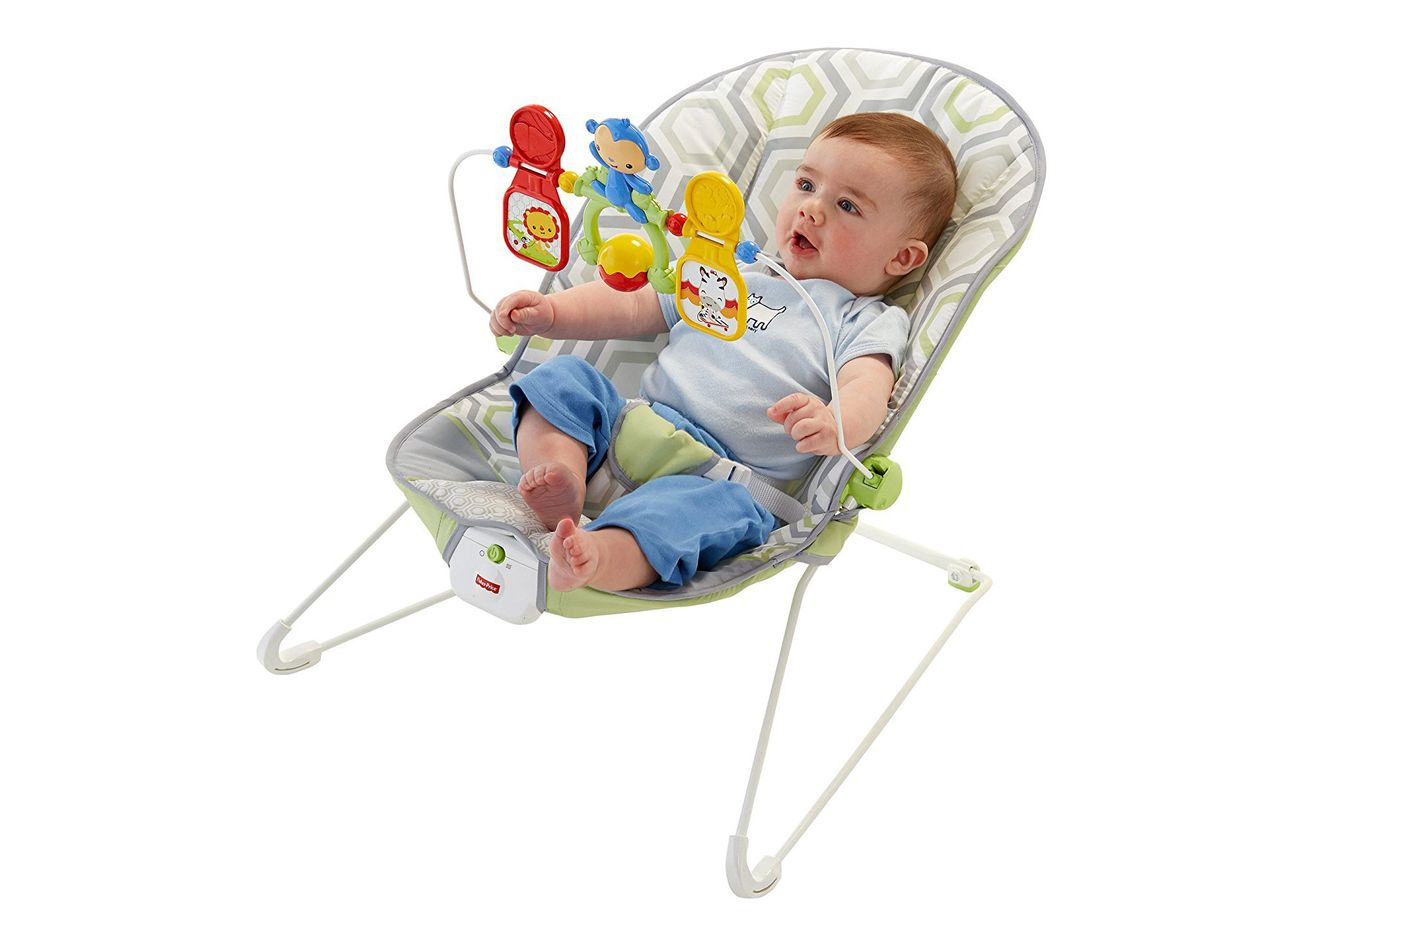 the best baby bouncers and jumpers reviews  - best bouncers for newborns to montholds